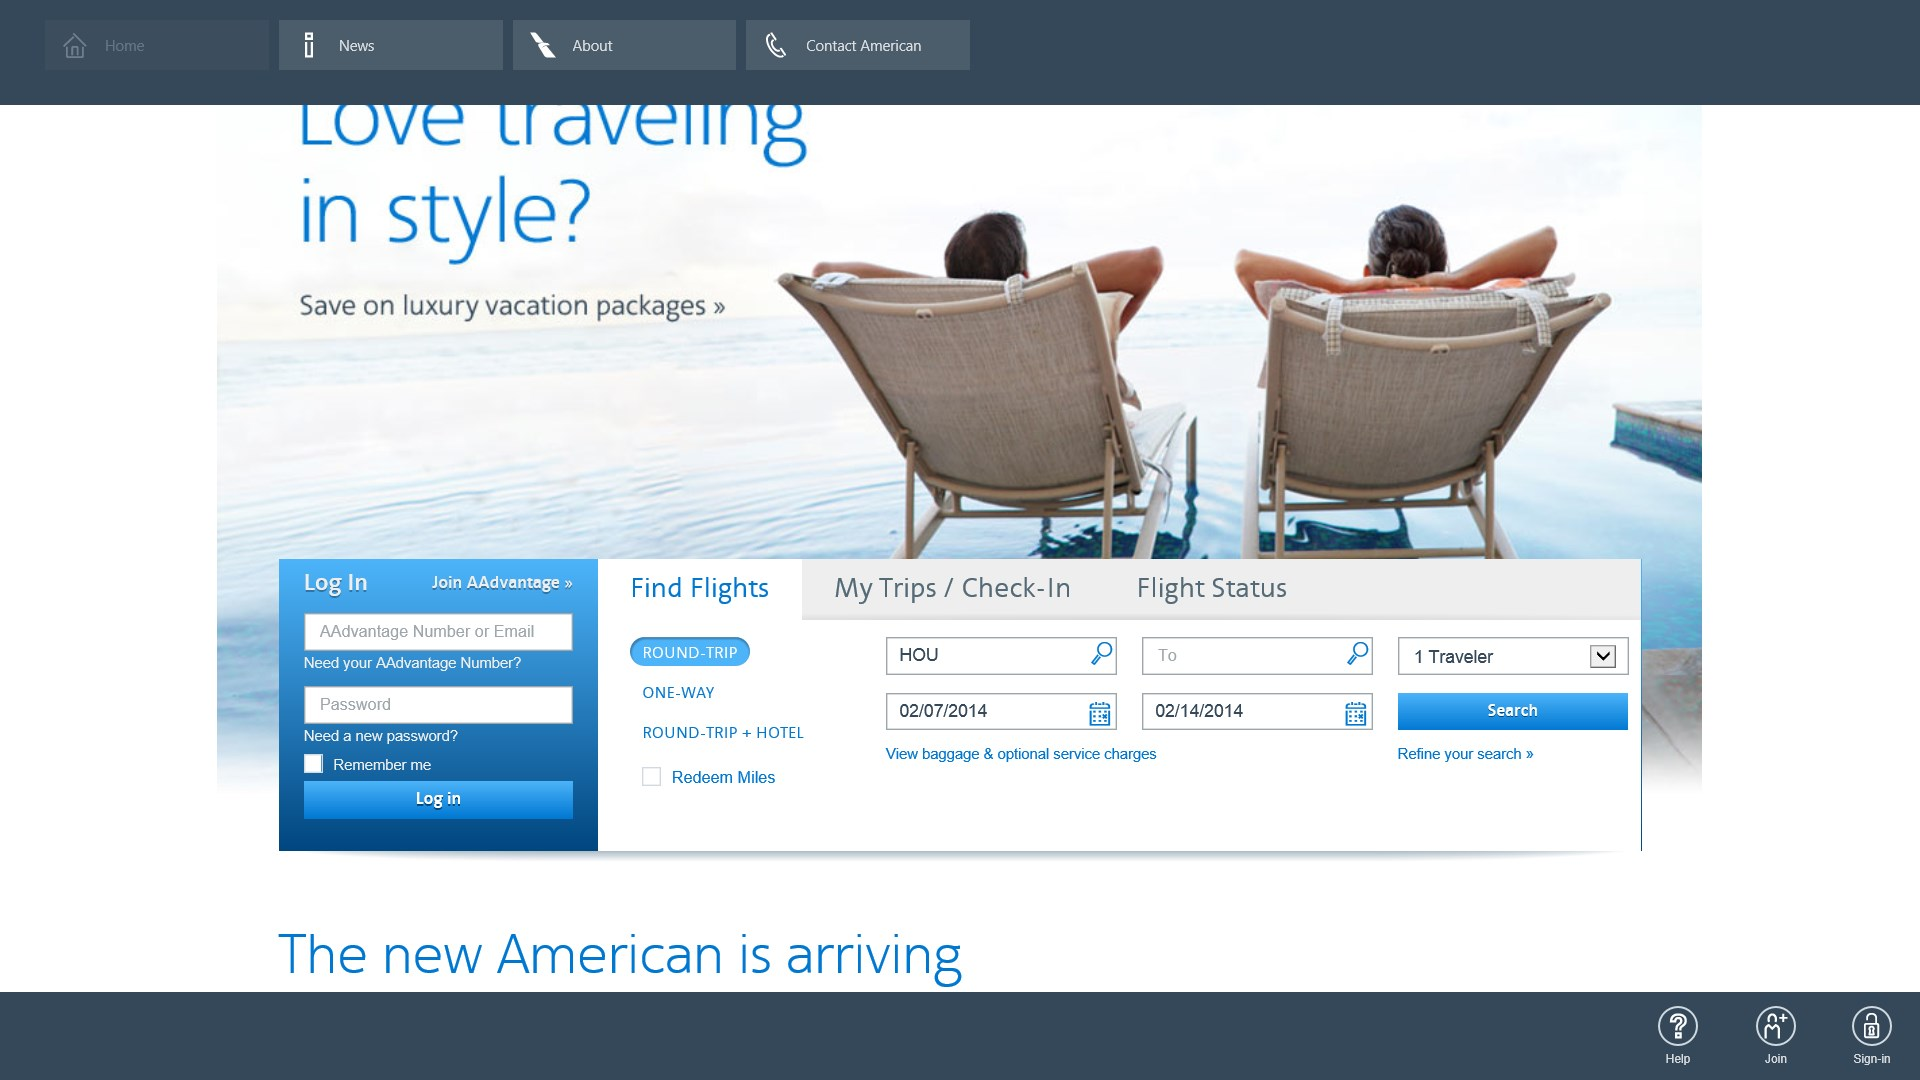 American Airlines for Windows 10 free download on Windows 10 App Store